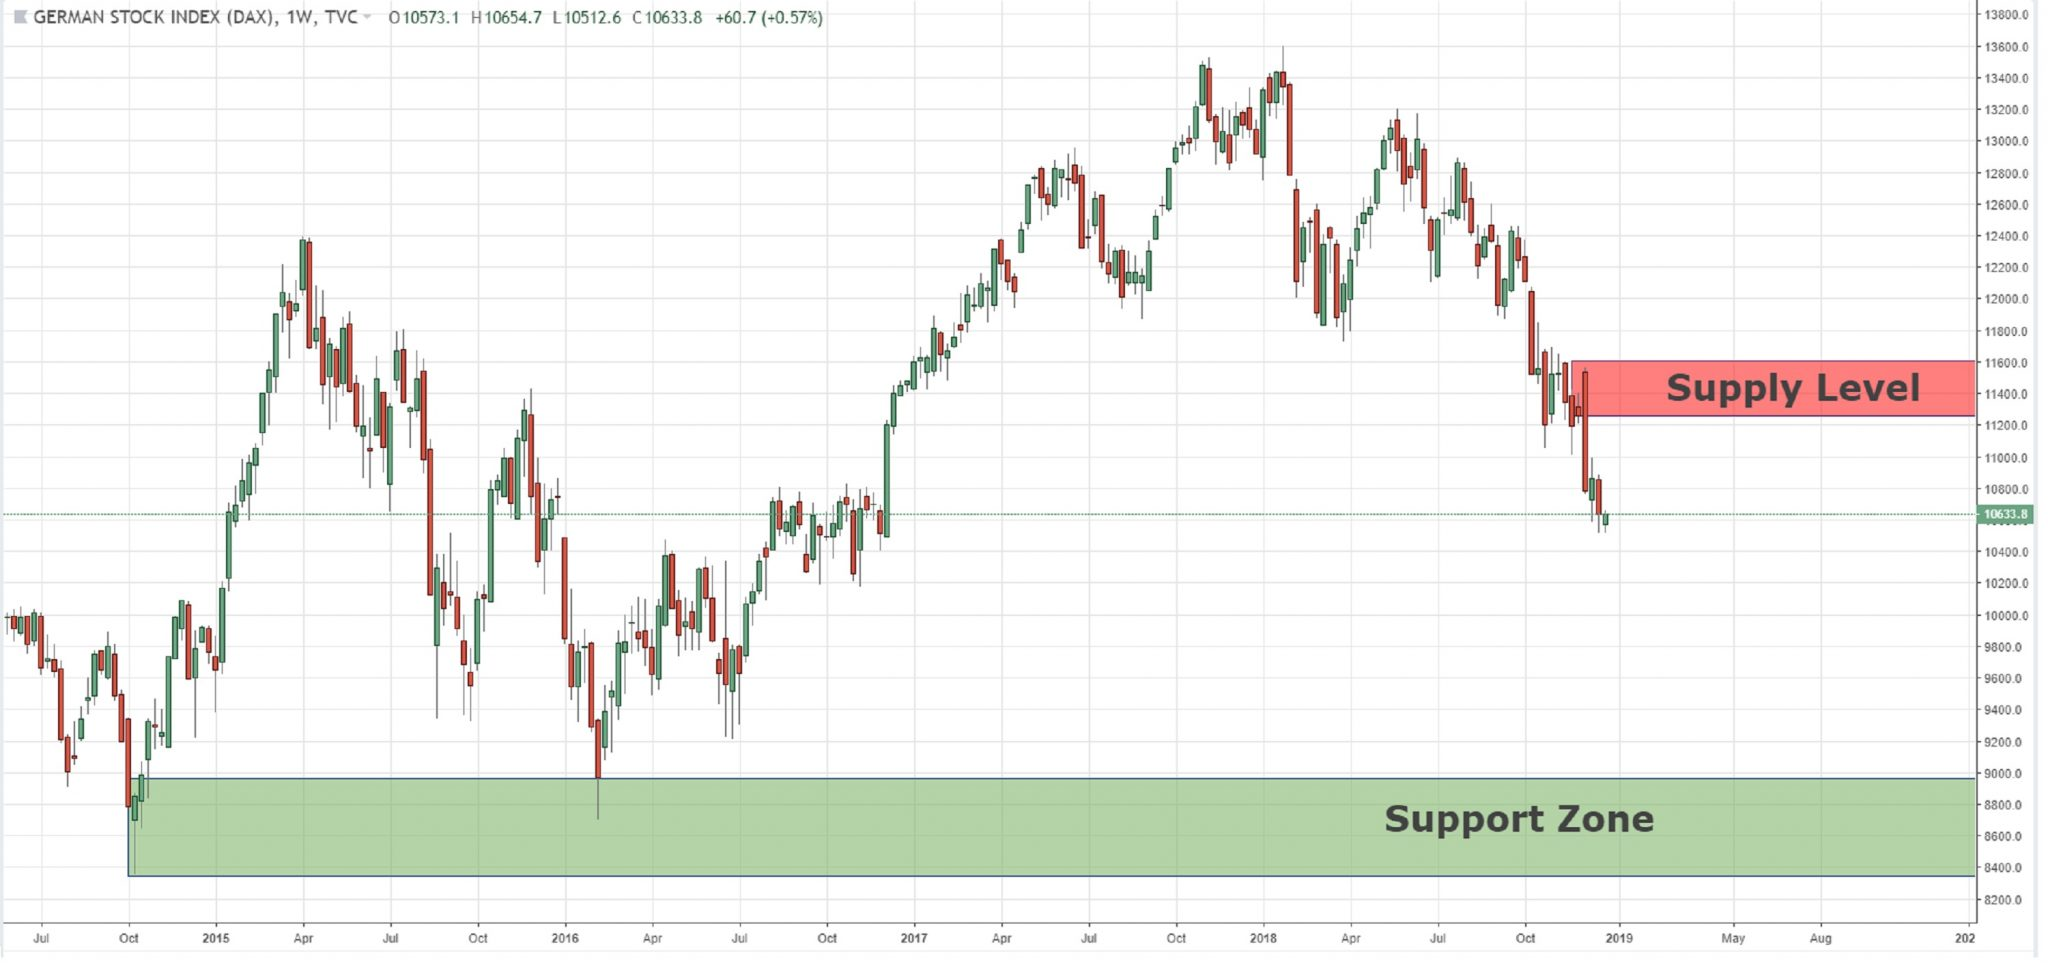 Weekly Chart Key Levels For DAX, NASDAQ, And NIKKEI  Index  25/12/2018